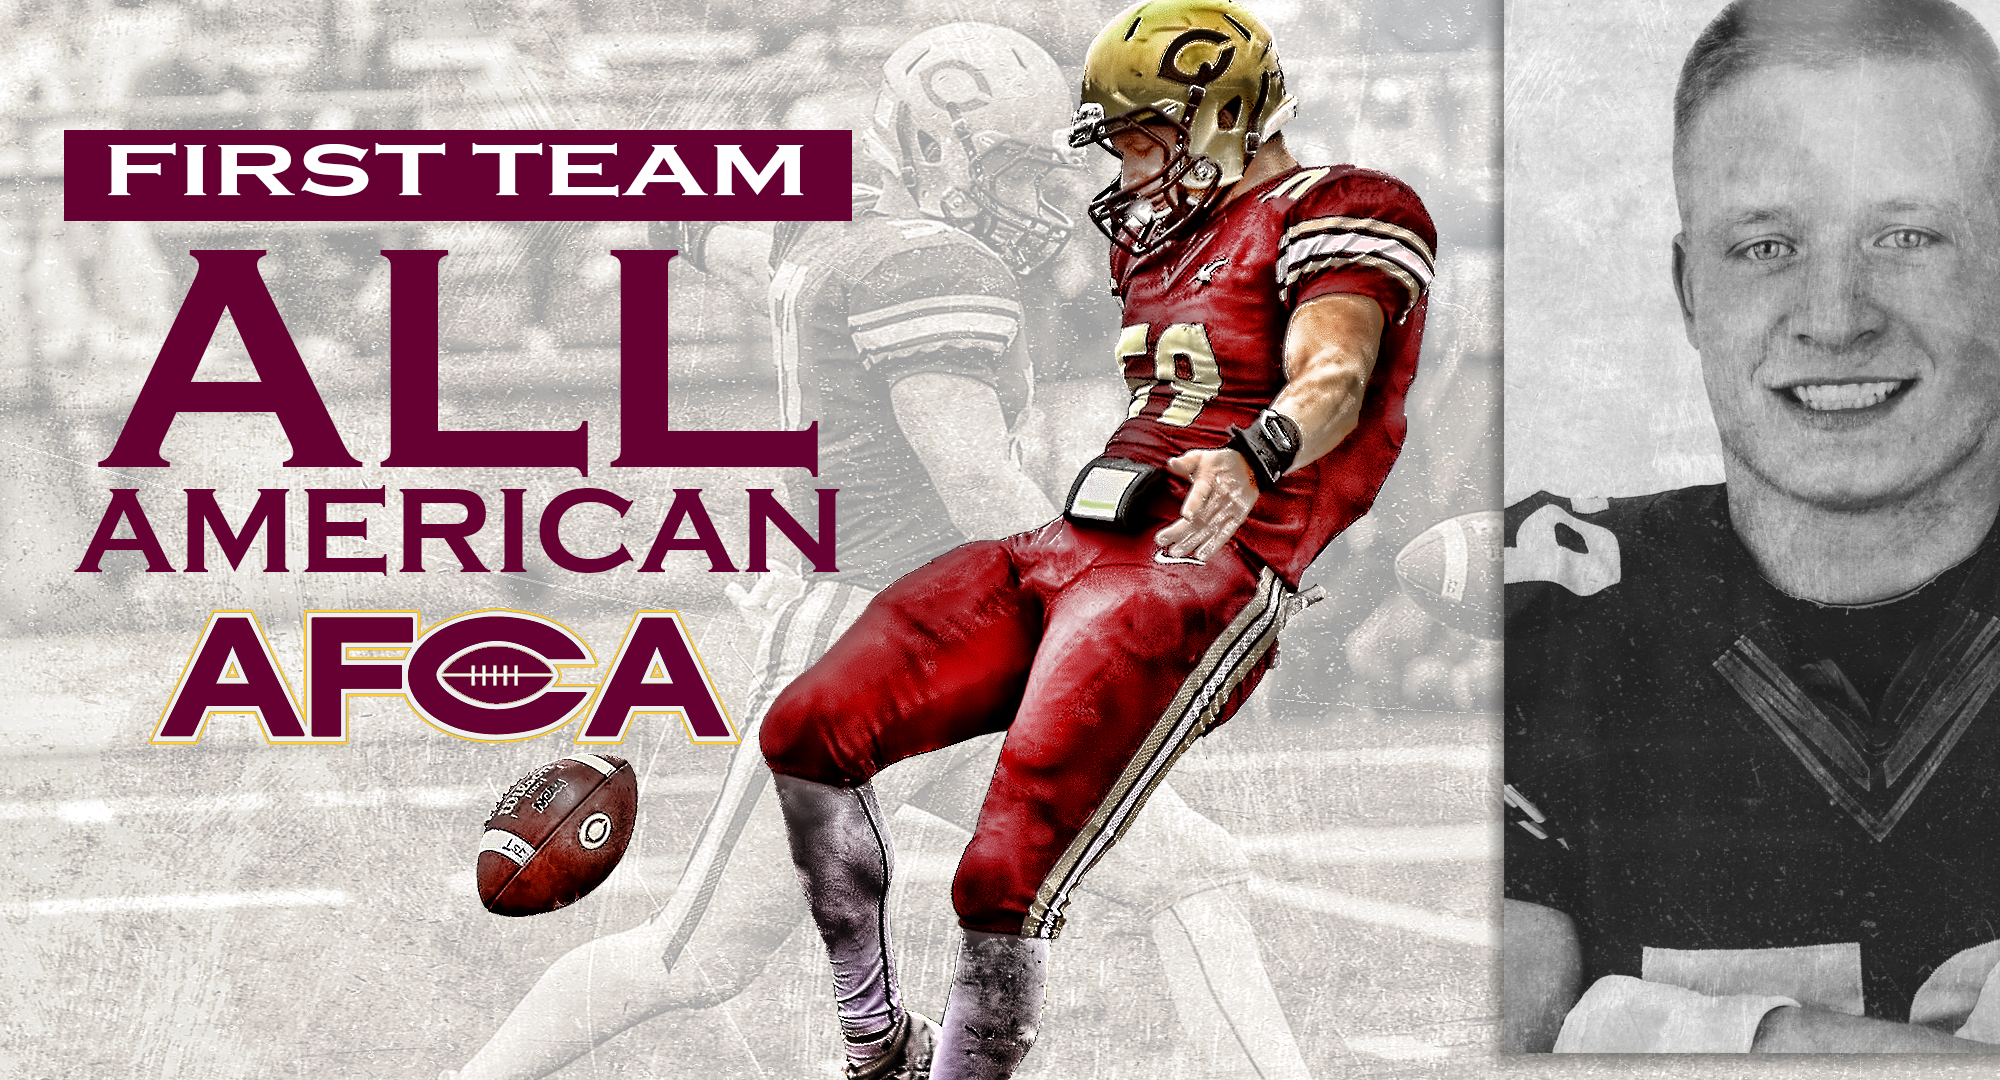 Senior Alex Berg was named to the AFCA All-American First Team. He is the seventh Cobber player in the history of the program to earn the honor.